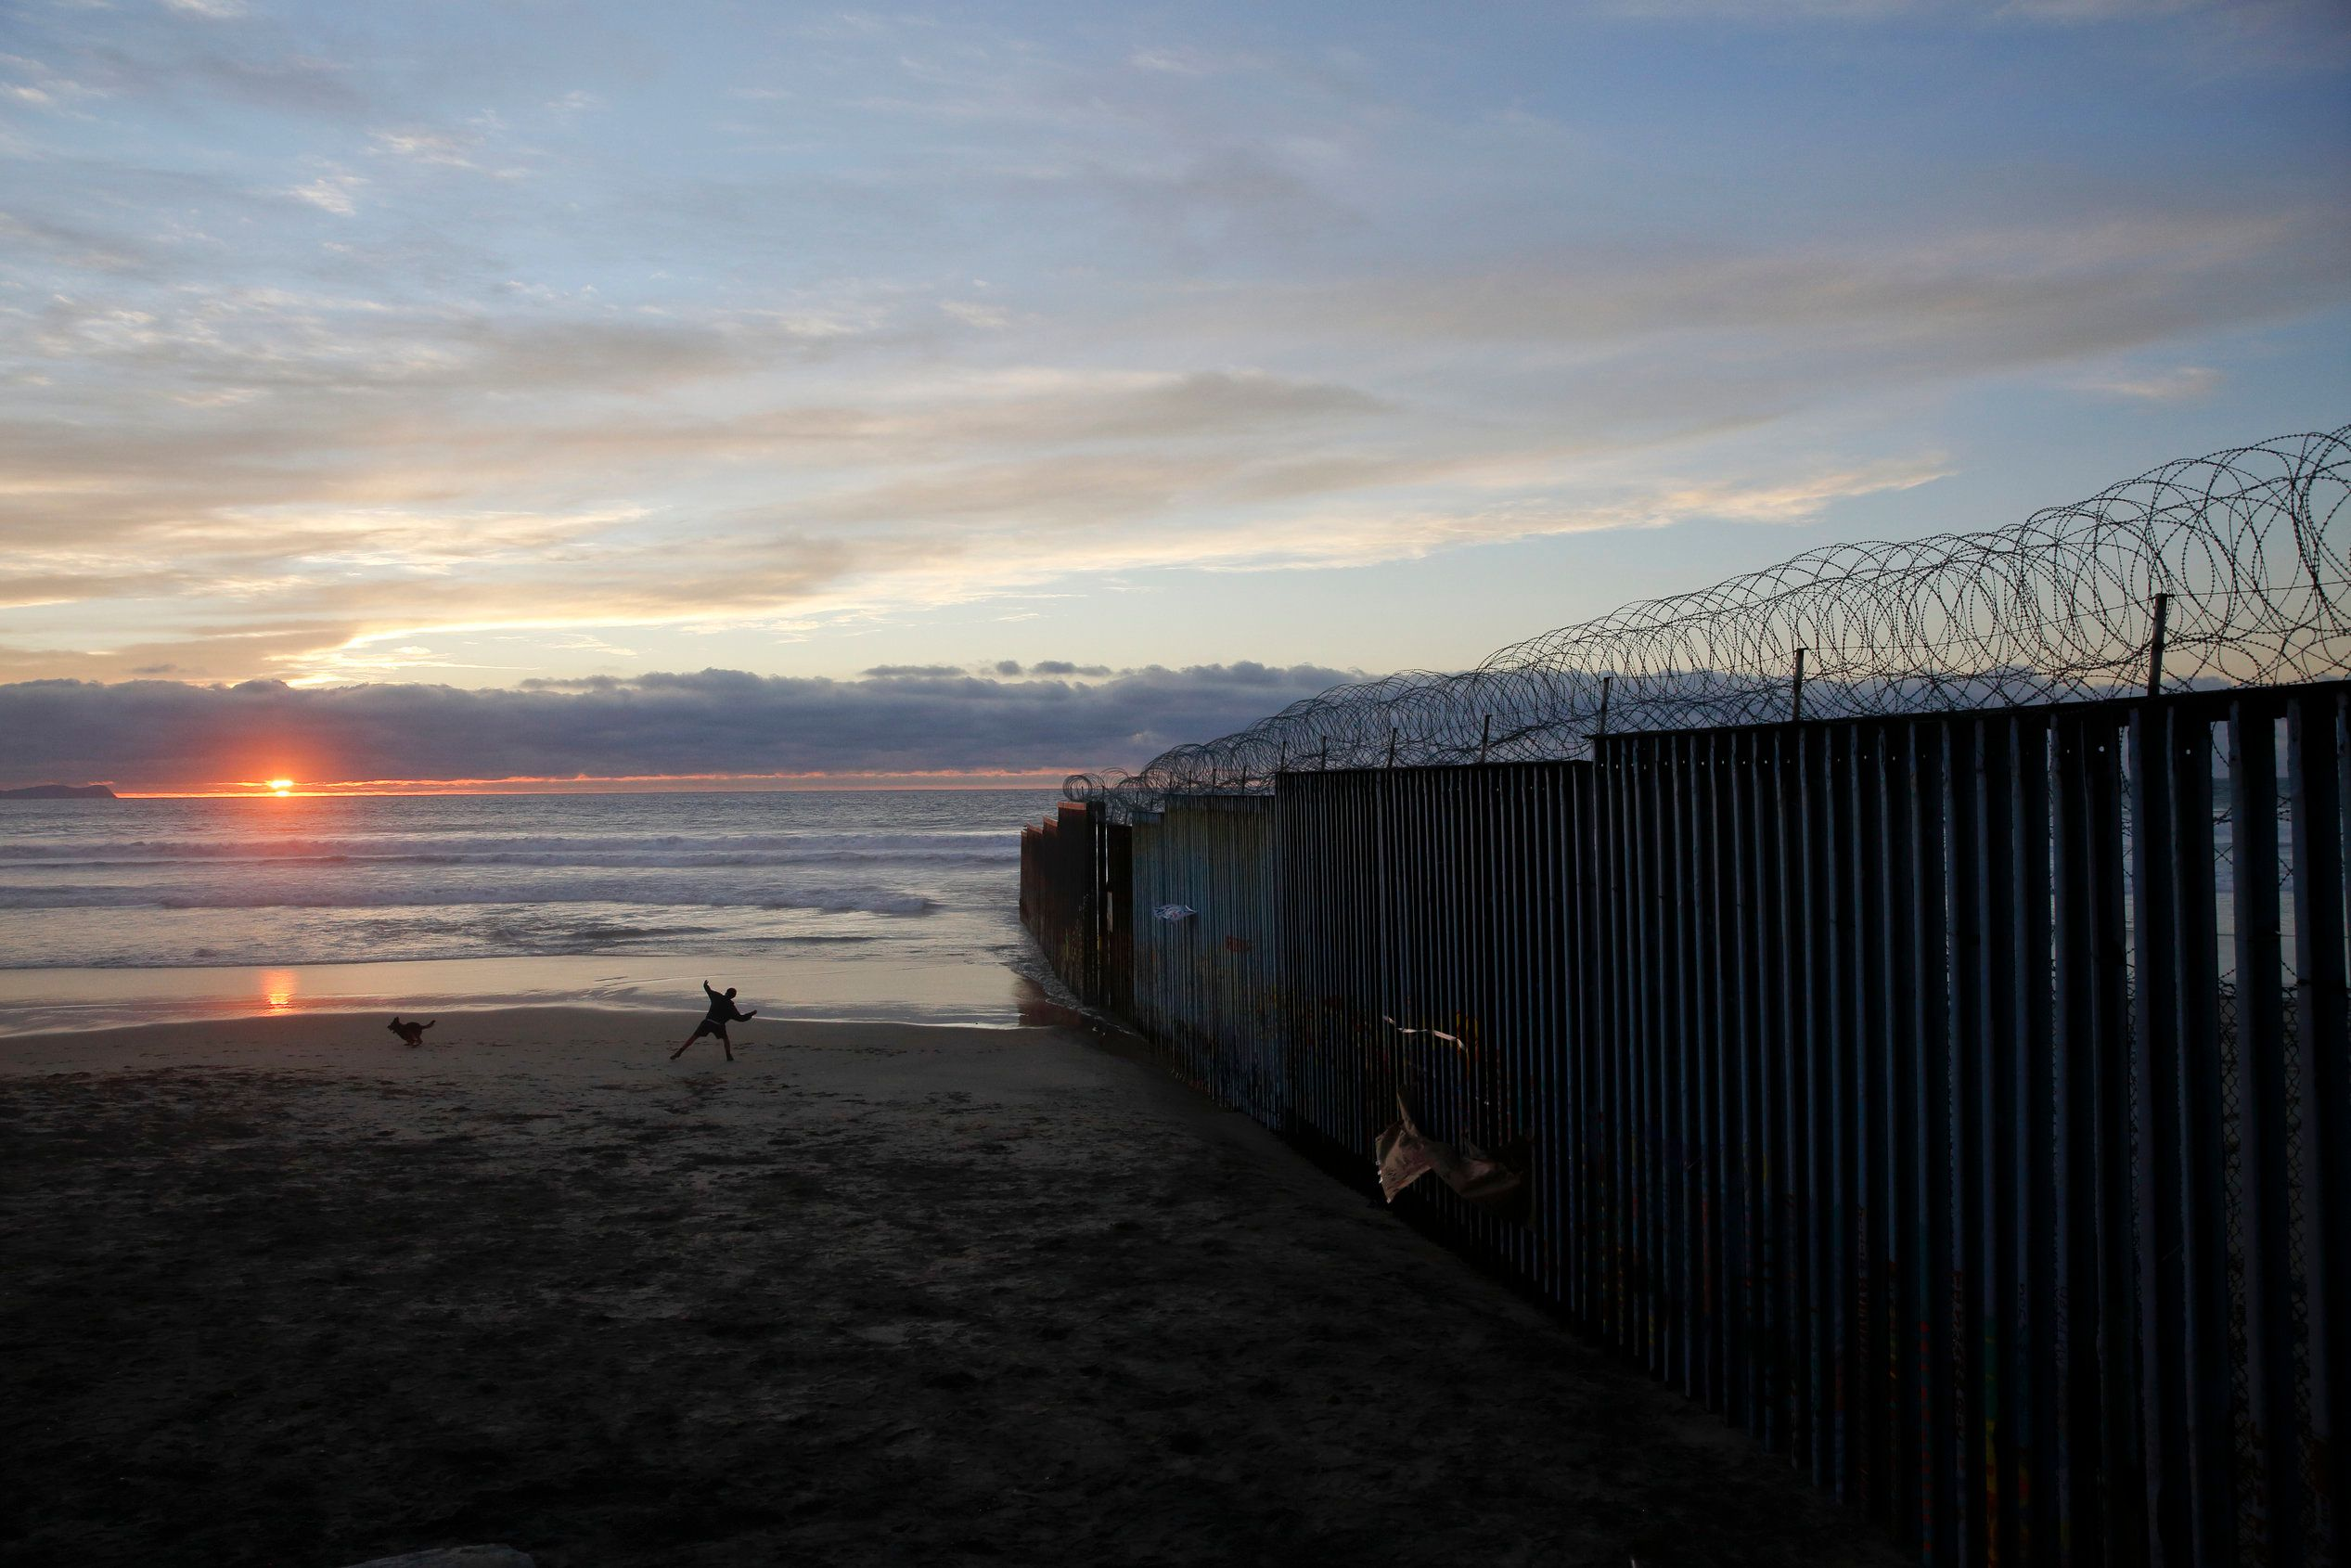 """FILE - In this Jan. 9, 2019, file photo, a man throws a ball for his dog next to the border wall topped with razor wire in Tijuana, Mexico. In his demands that Congress set aside $5.7 billion for a border wall, President Donald Trump insists a physical barrier would stop heroin entering the U.S. from Mexico. But U.S. statistics, analysts and testimony at the trial of drug kingpin Joaquin """"El Chapo"""" Guzman in New York show that most hard drugs entering the U.S. from Mexico come through land ports of entry staffed by agents, not open sections of the border. (AP Photo/Gregory Bull, File)"""